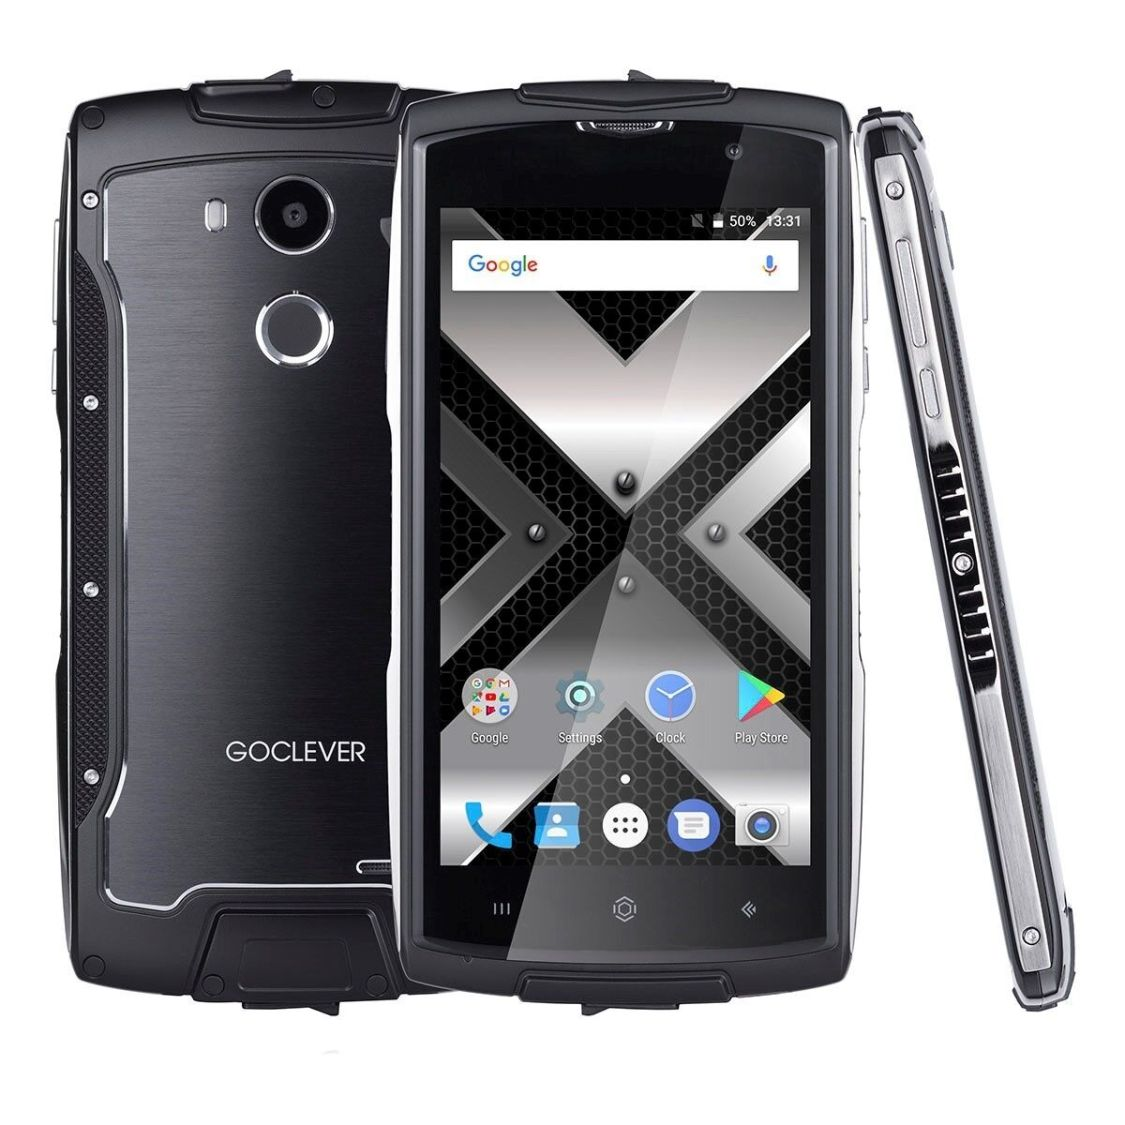 GOCLEVER QUANTUM 500 Steel RUGGED IP68 OUTDOOR HANDY 4G LTE ANDROID SMARTPHONE